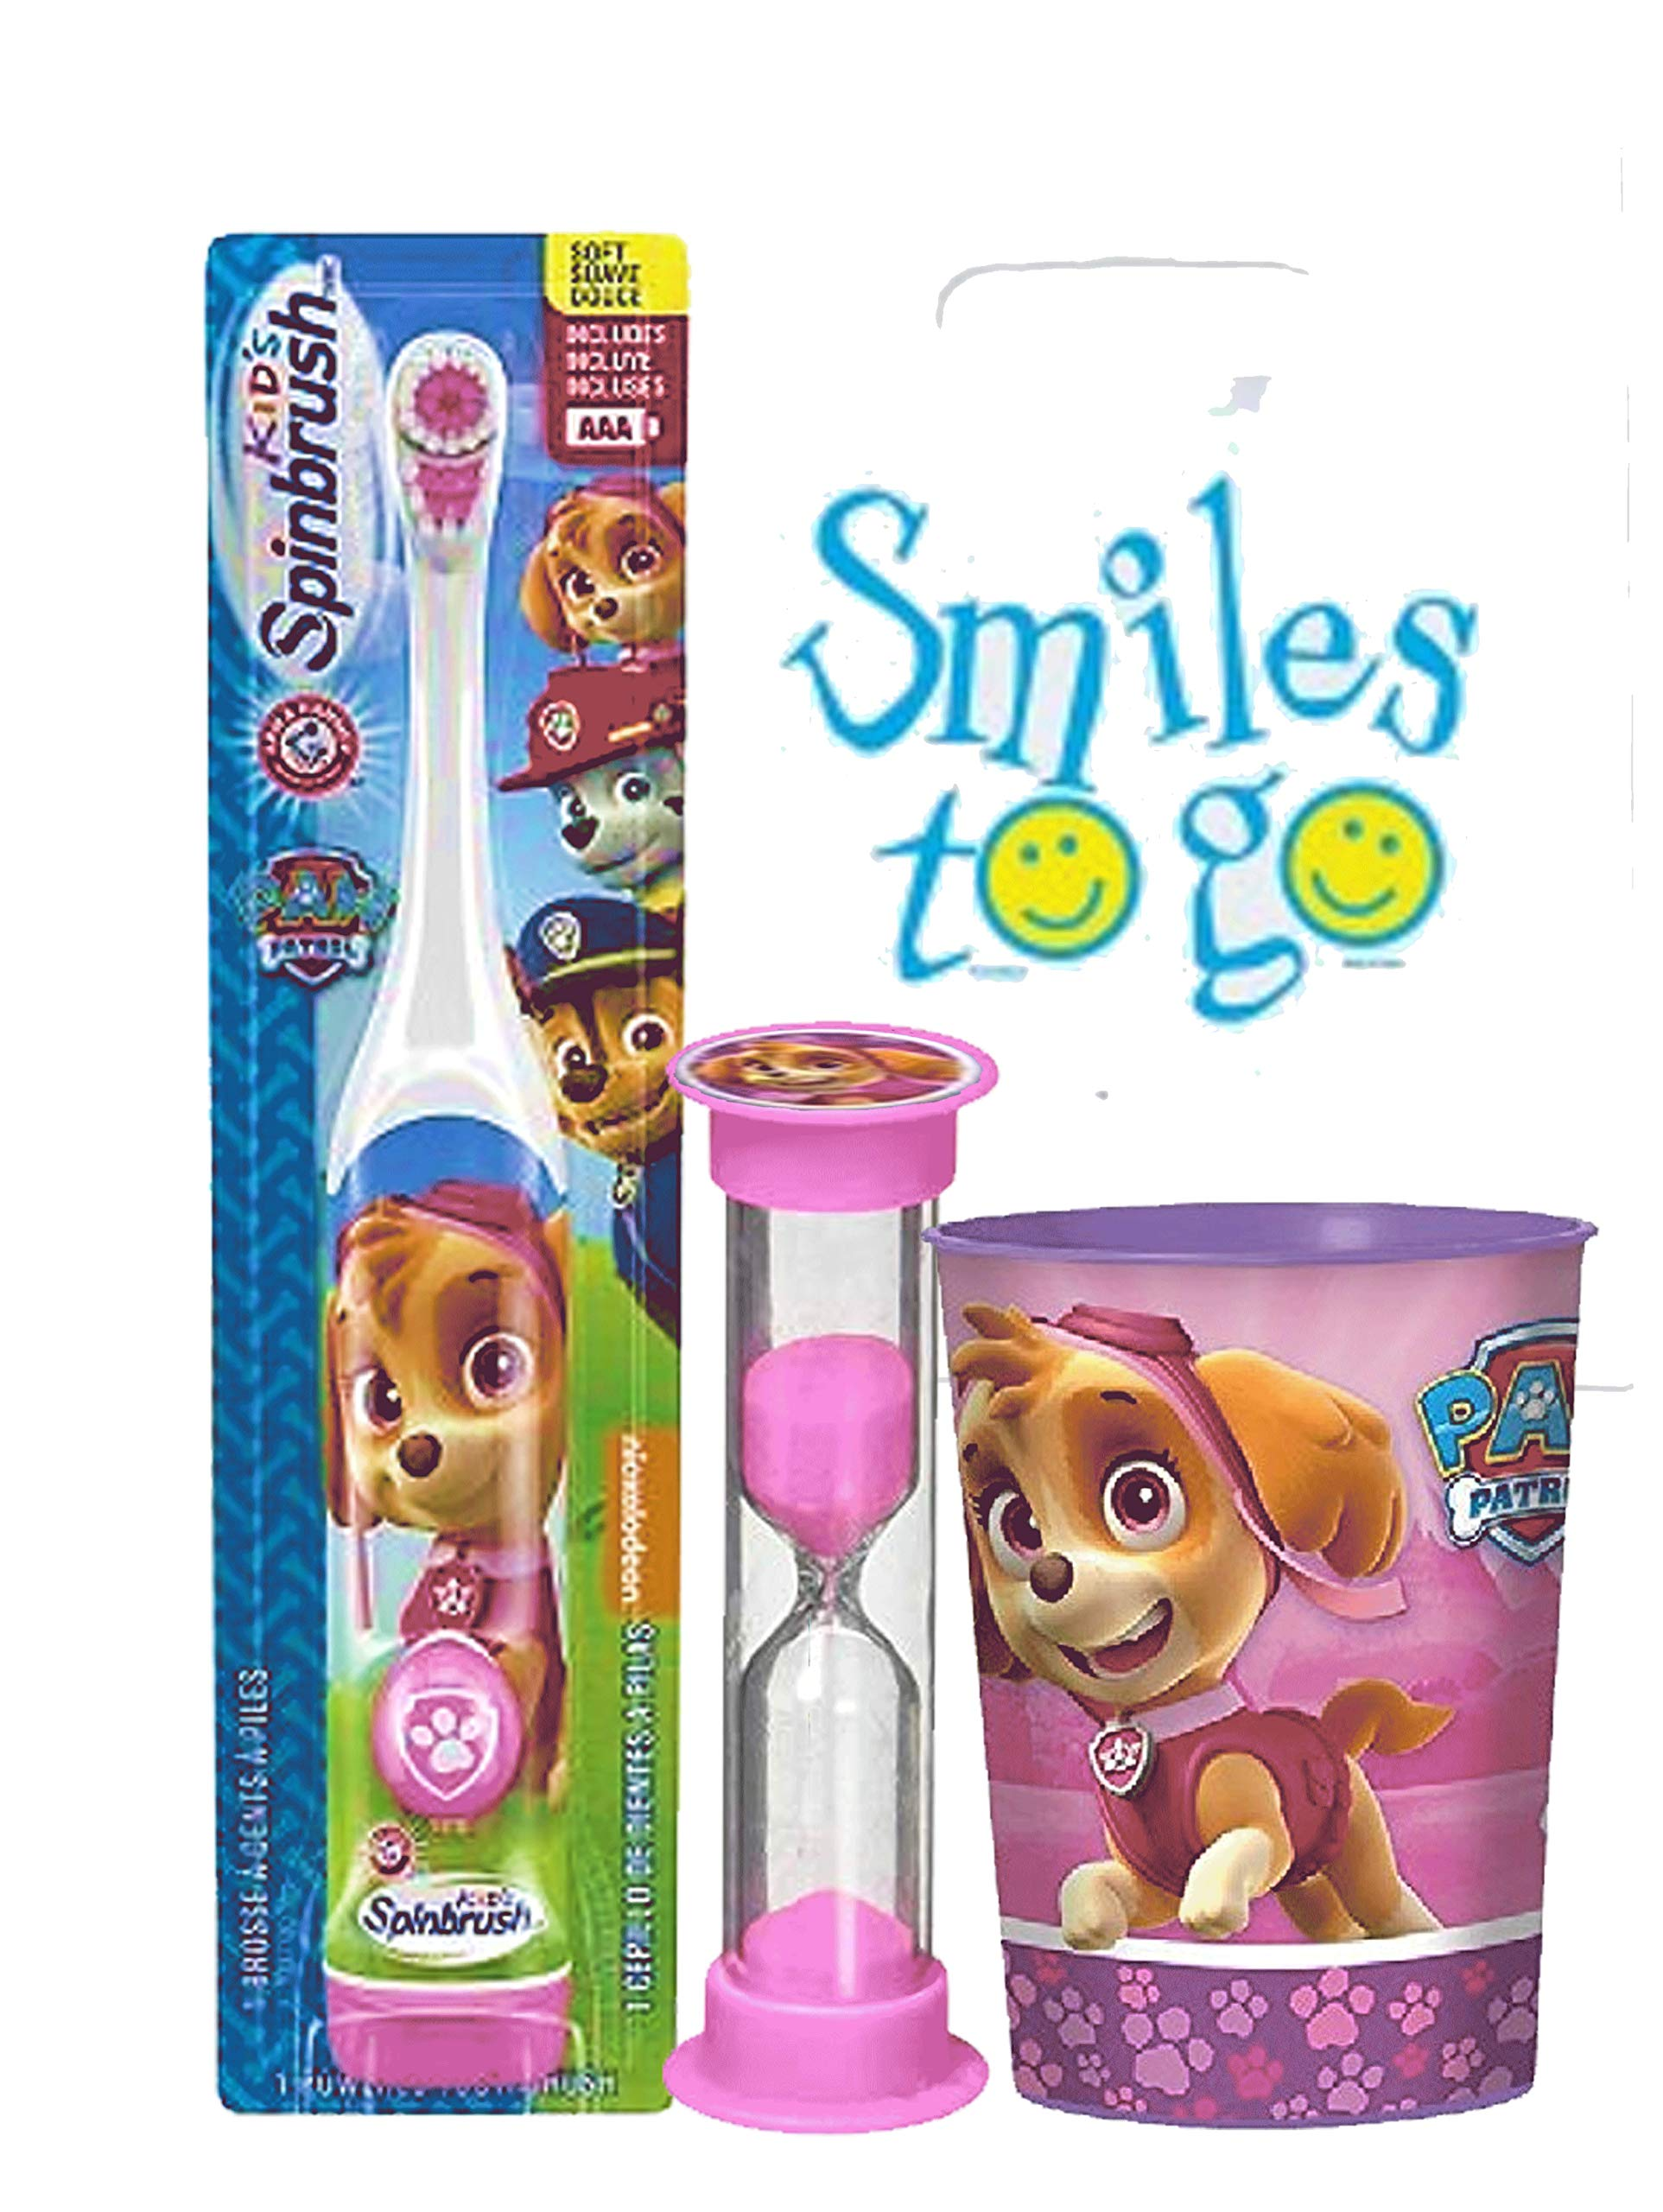 The Paw Patrol Boys and Girls 3pc Bright Smile Oral Hygiene Bundle! Turbo Spin Toothbrush, Brushing Timer & Mouthwash Rinse Cup! Plus Dental Gift Bag & Tooth Saver Necklace! (Skye)